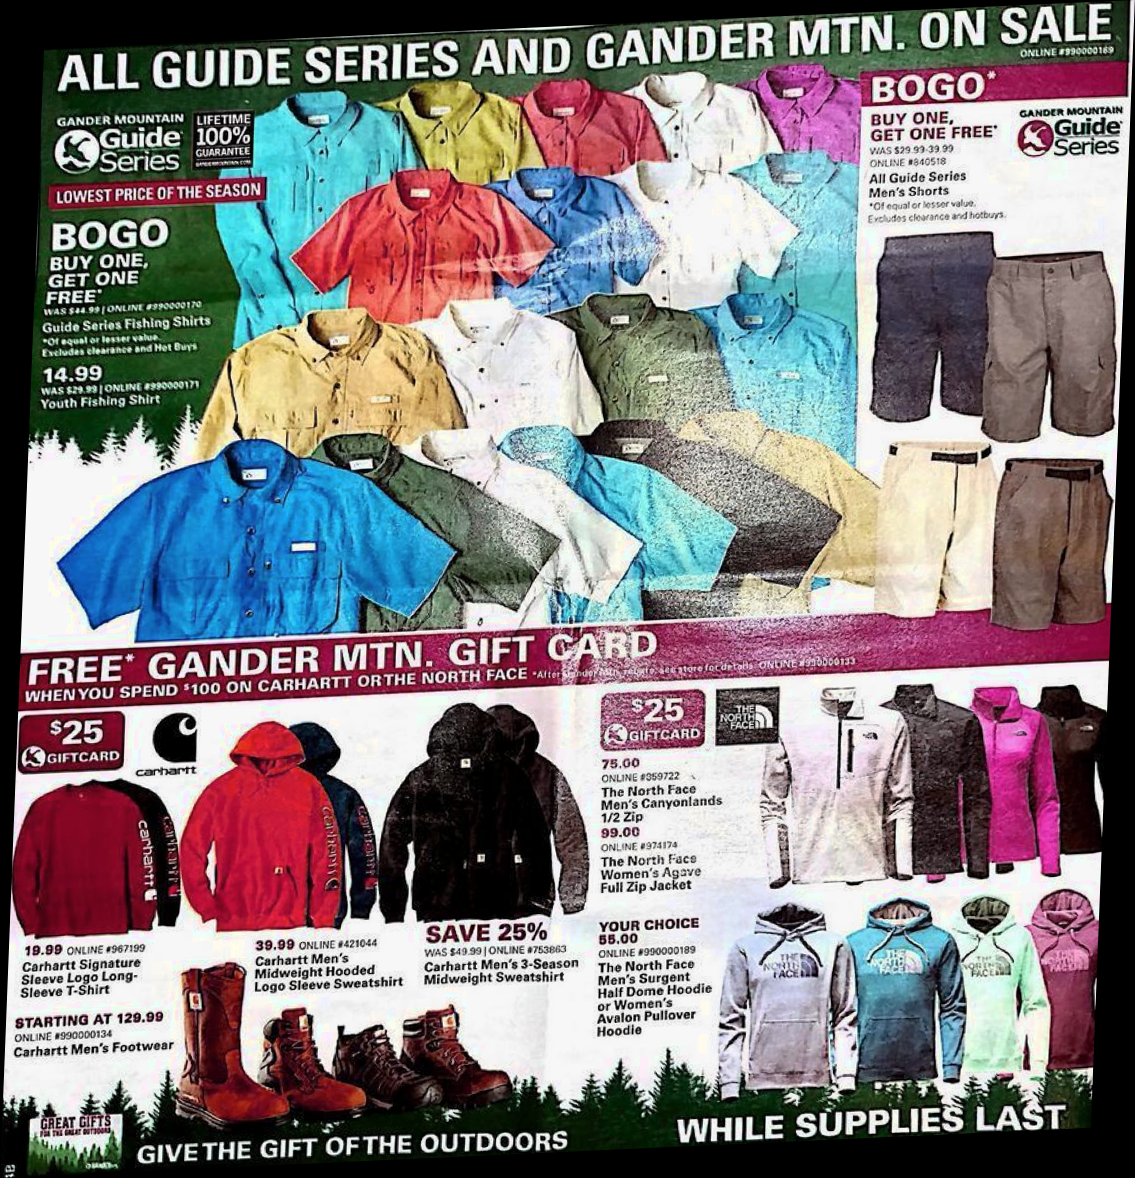 e2b0c2443 Gander Outdoors Black Friday 2019 Ad & Sale - BlackerFriday.com